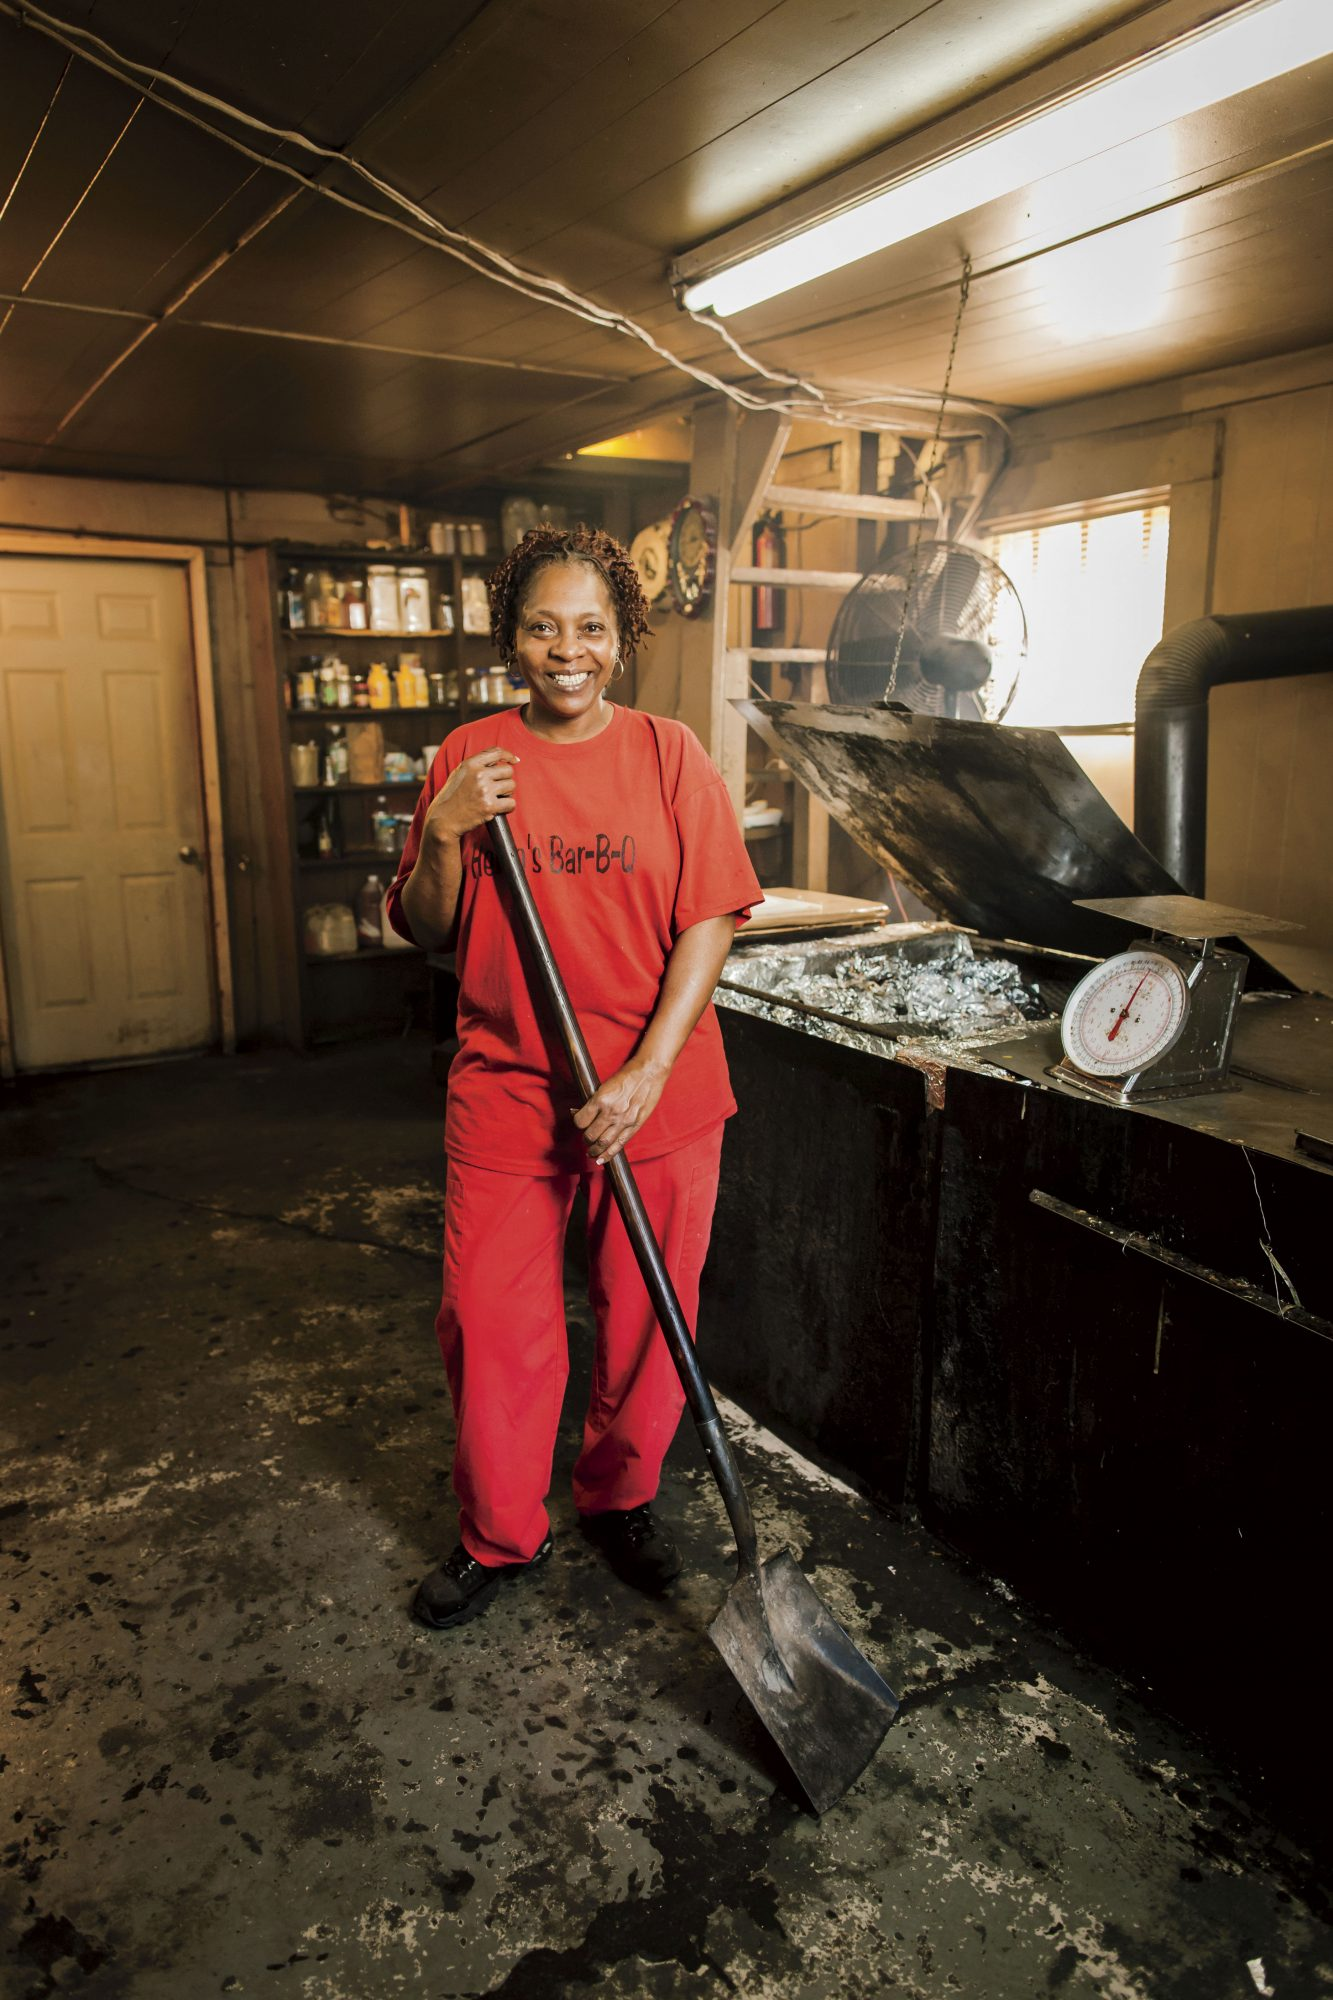 Helen Turner of Helen's Bar-B-Q Brownsville, TN